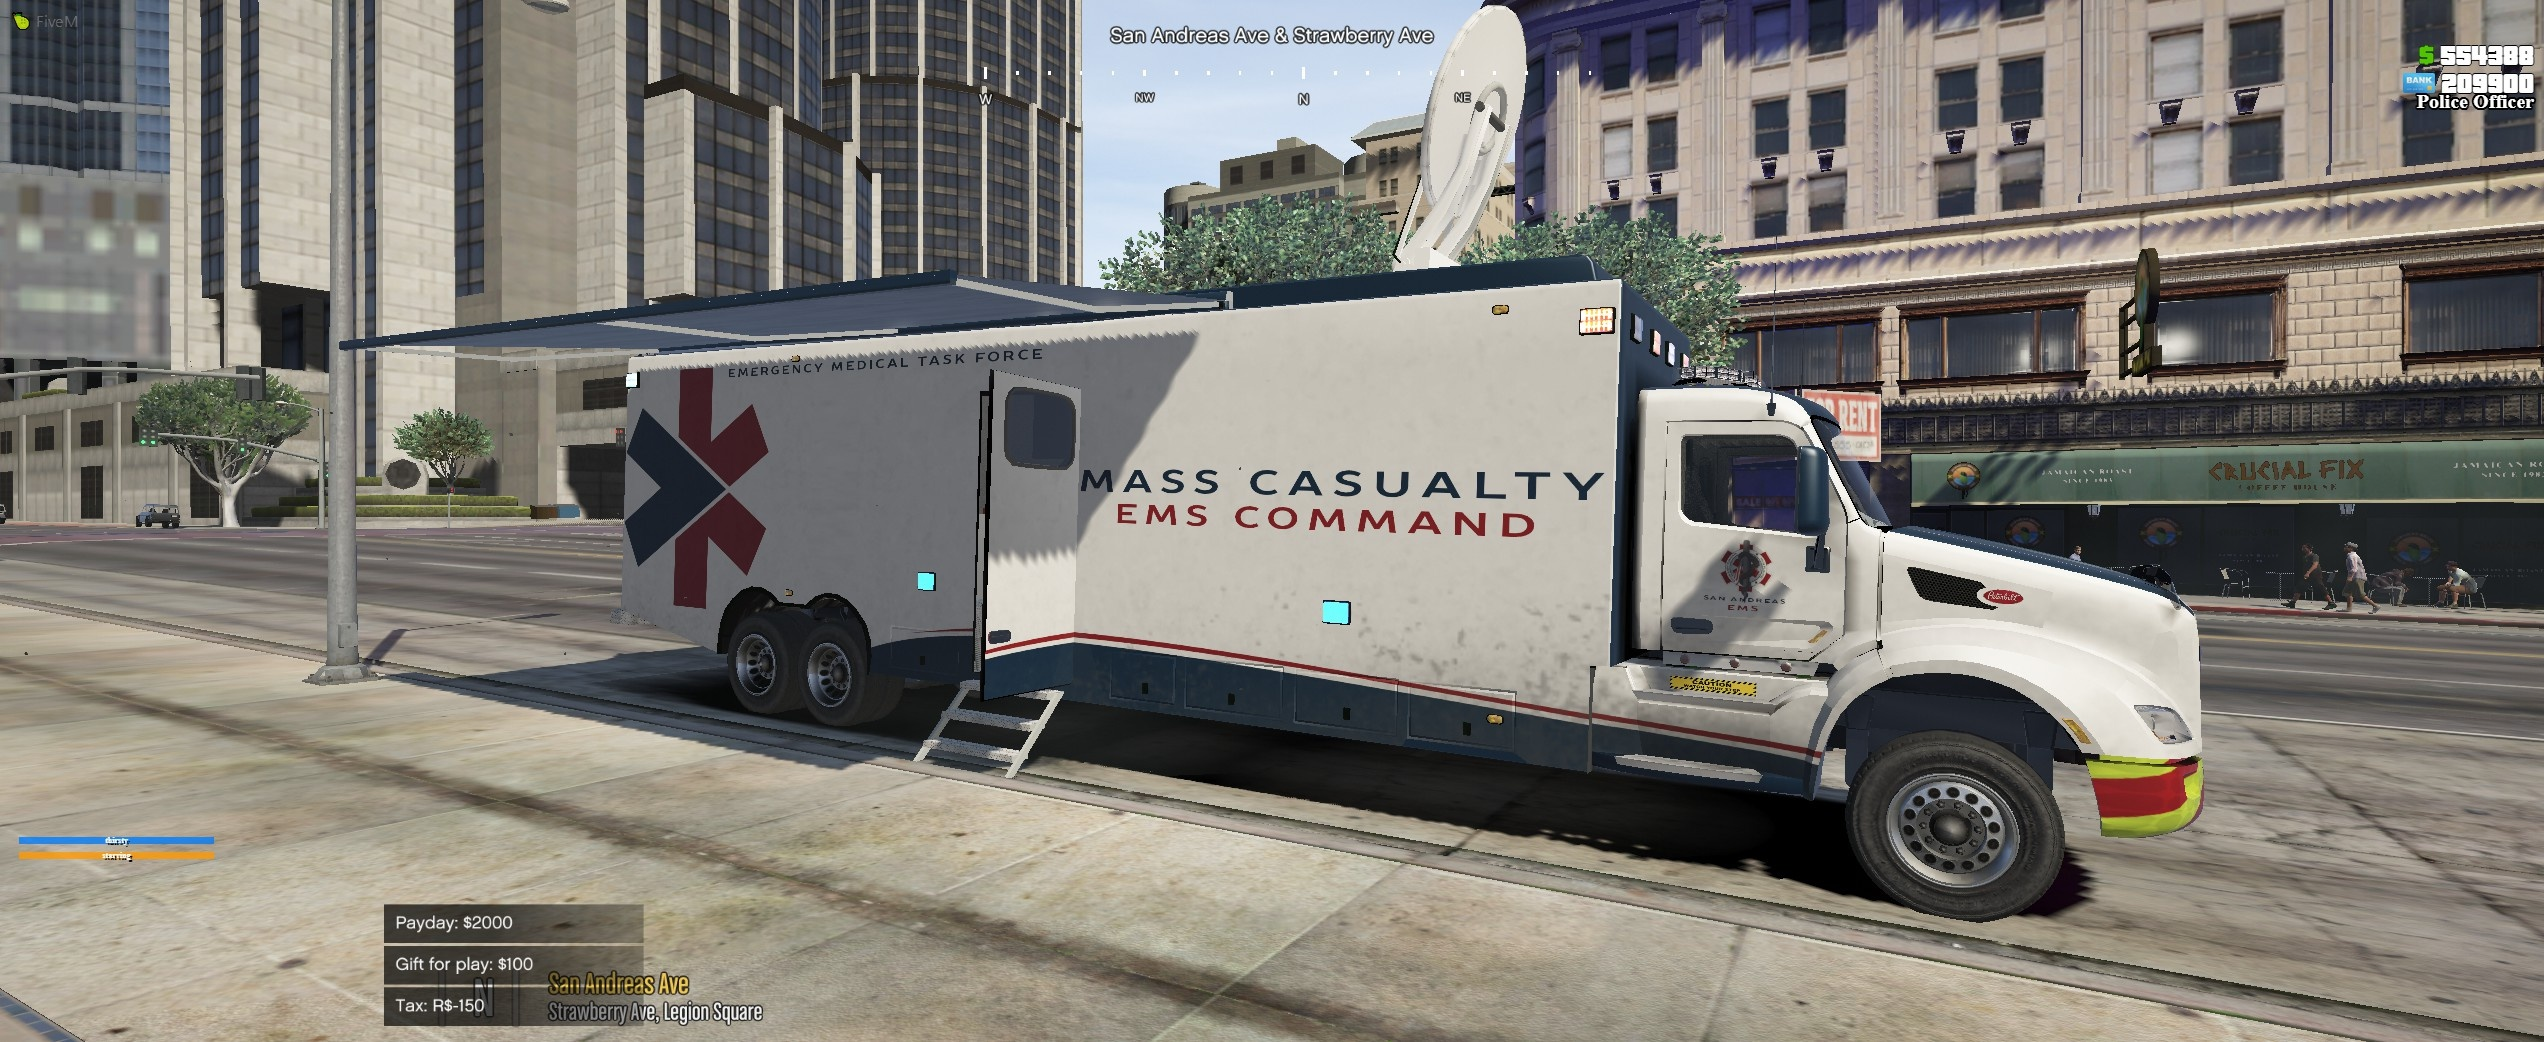 Peterbilt Mobile Command Center by Candimods add on/5M 1.02